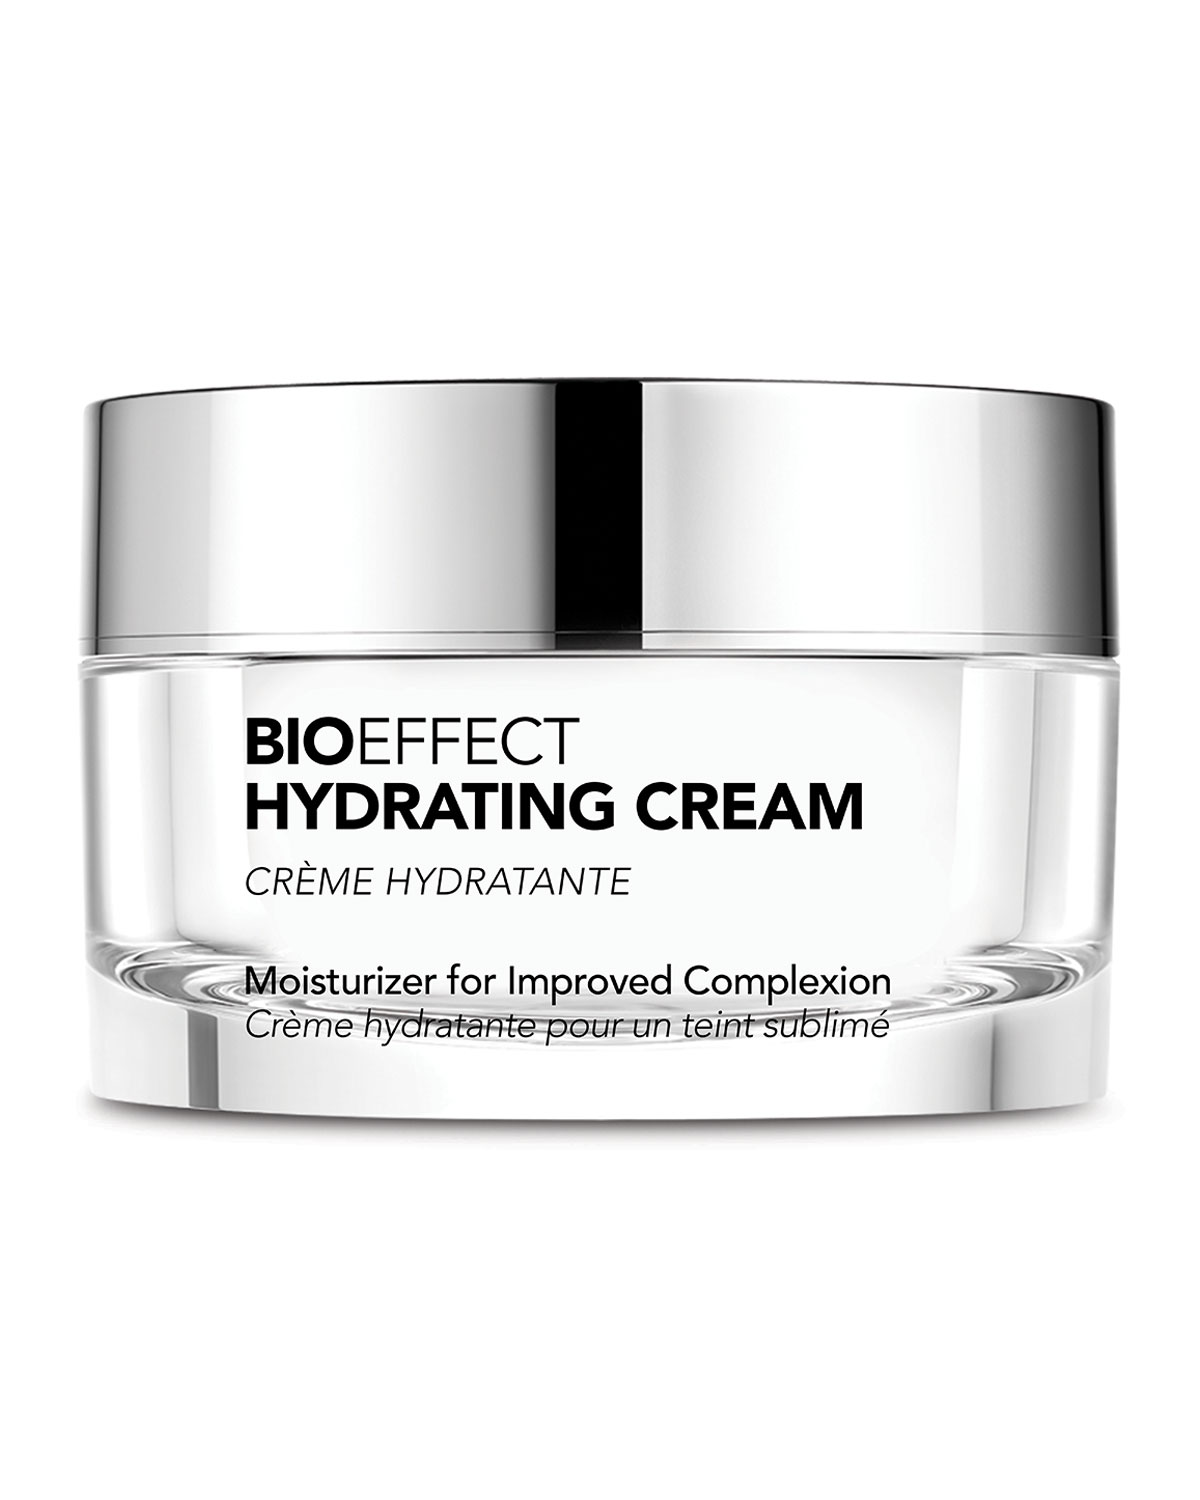 Bioeffect 1 OZ. HYDRATING CREAM